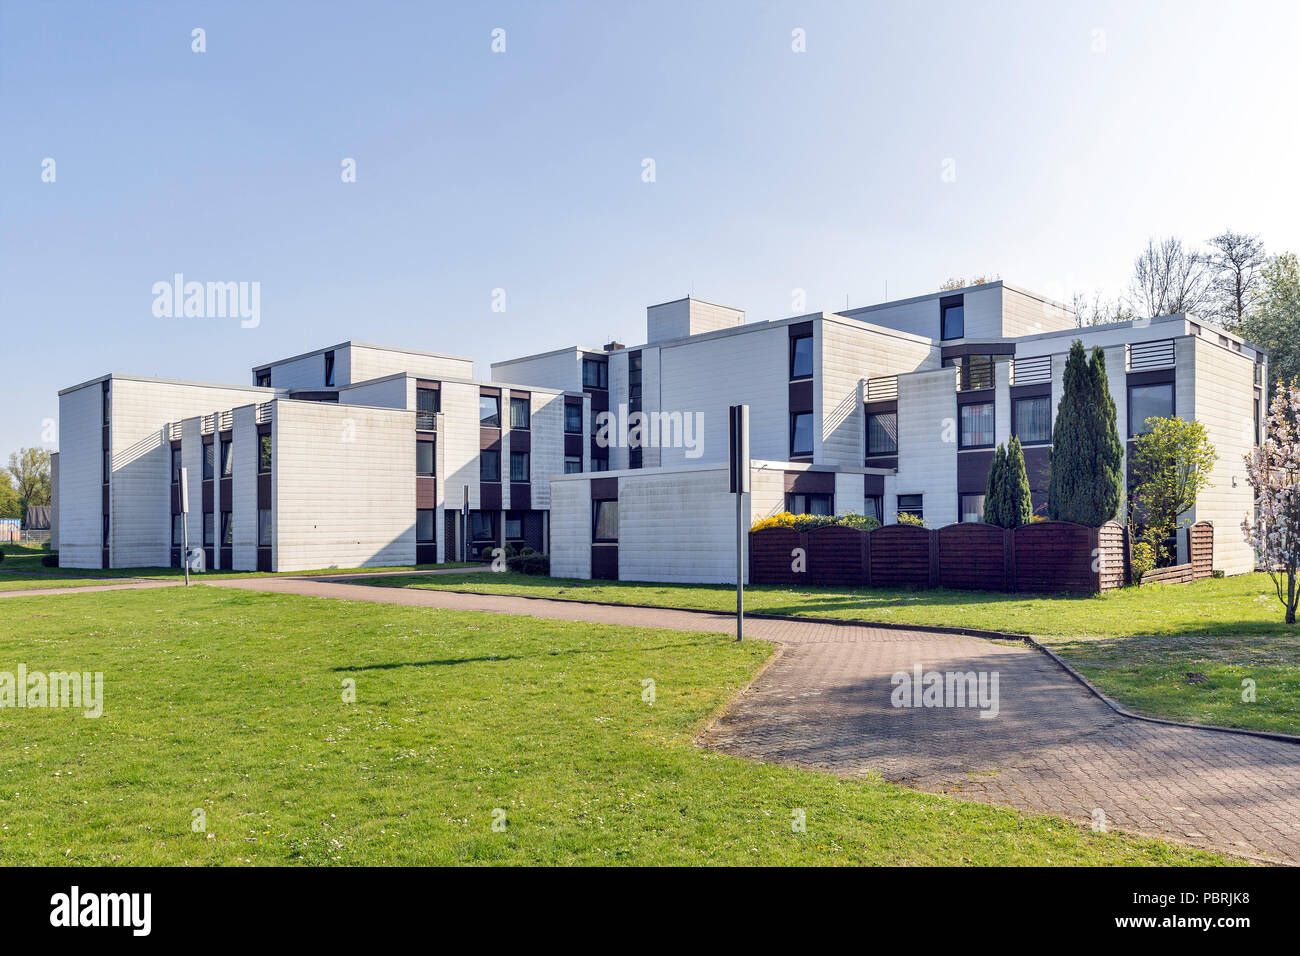 Dormitory of the University of Applied Sciences, FHDW, Paderborn, East-Westphalia, North Rhine-Westphalia, Germany - Stock Image